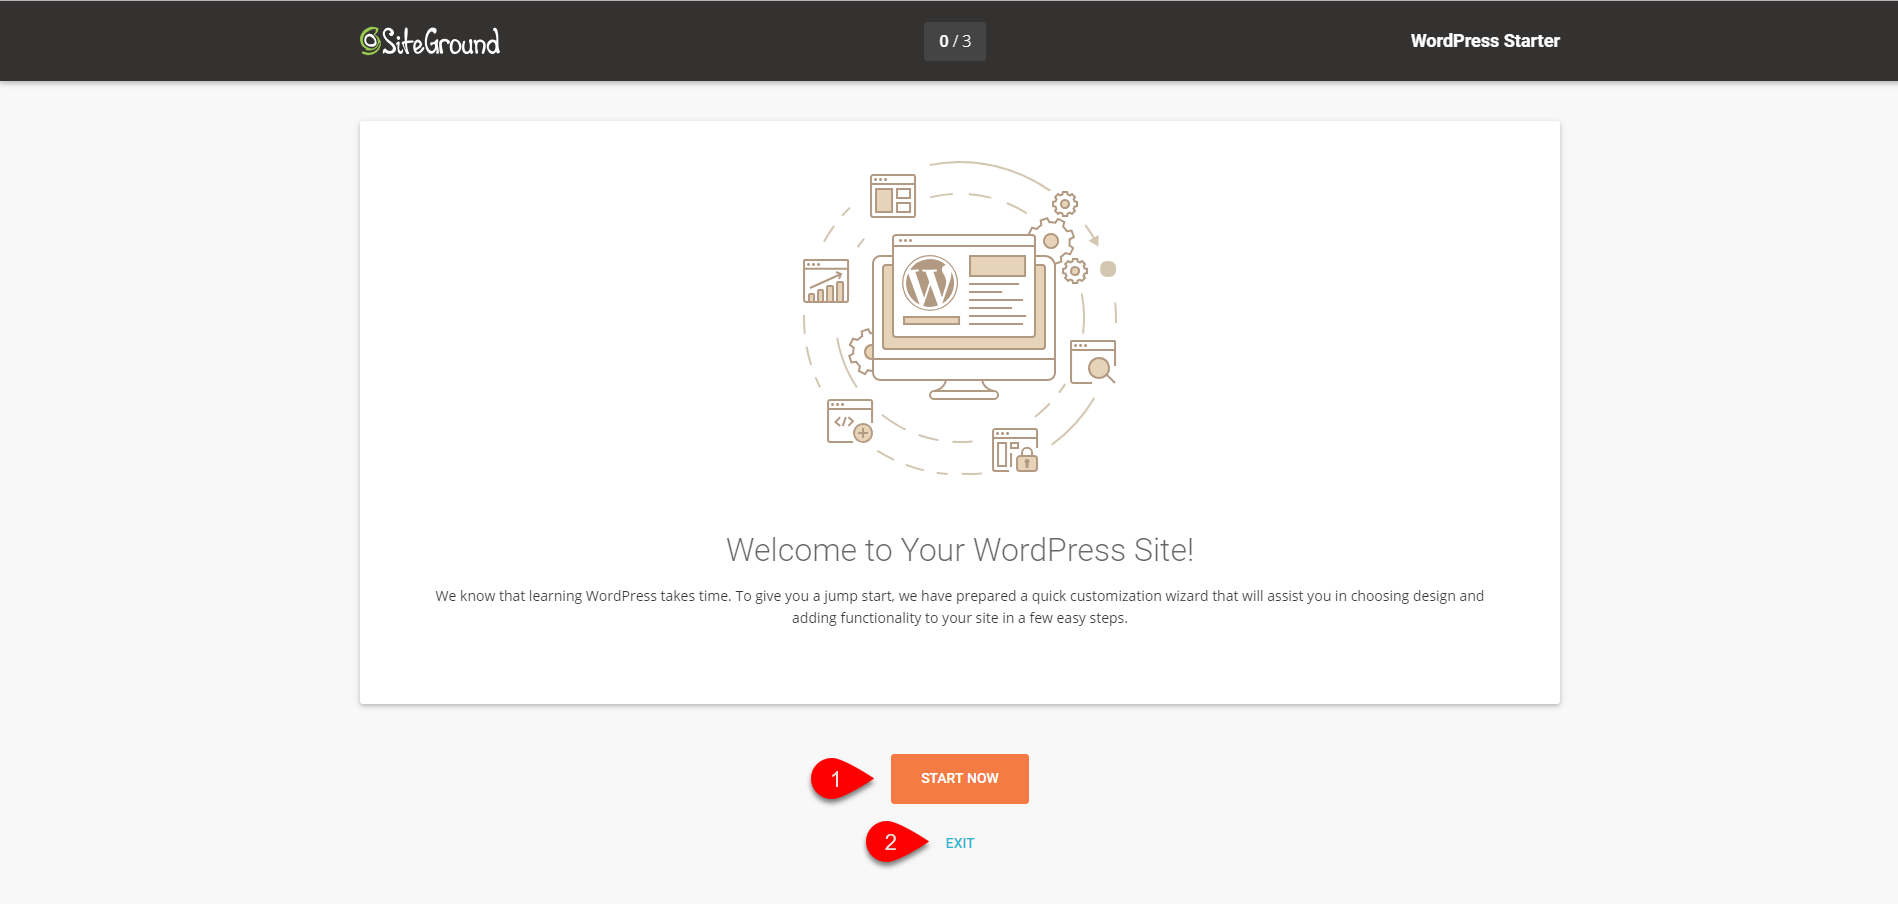 Installing WordPress on SiteGround 4